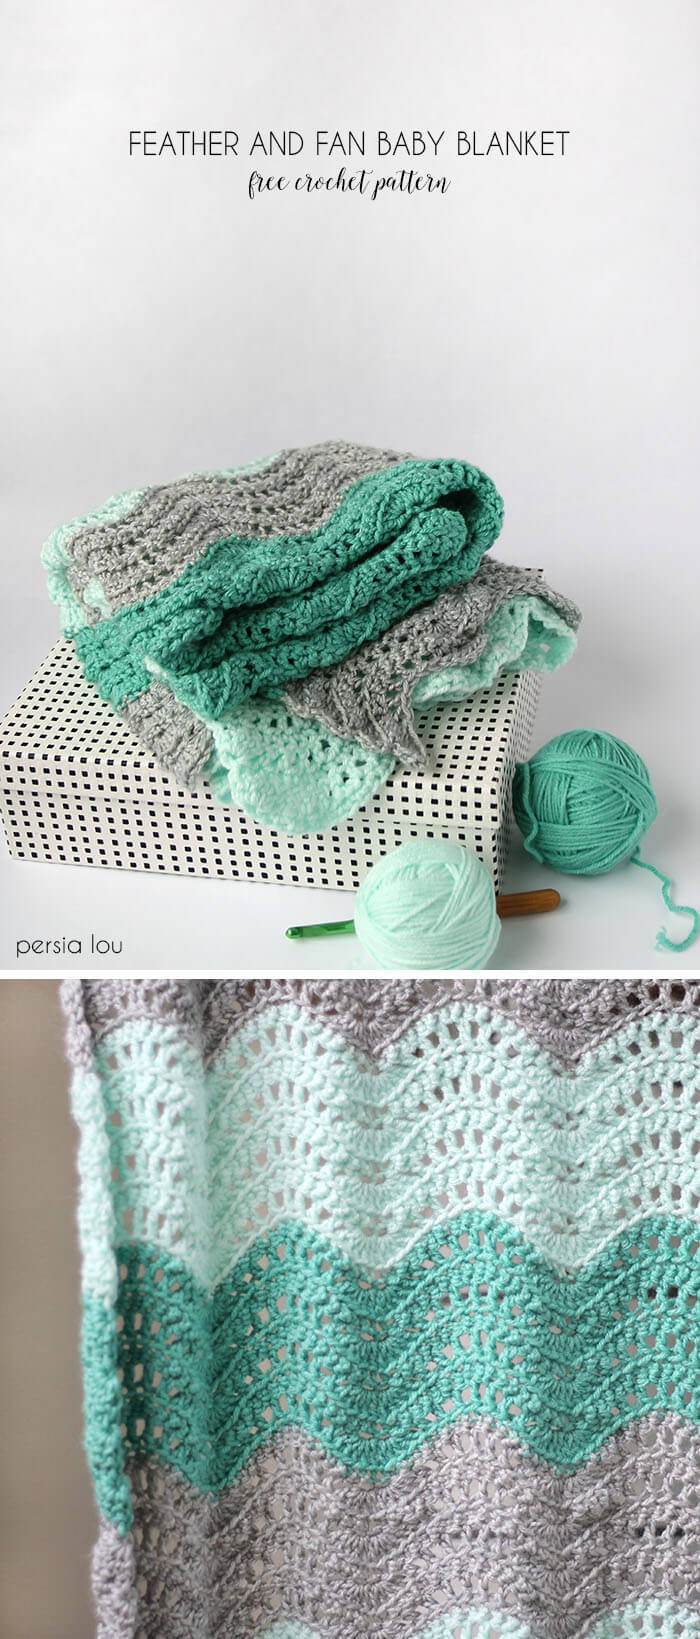 Baby Blanket Patterns Fresh Crochet Feather and Fan Baby Blanket Free Pattern Of Delightful 50 Pictures Baby Blanket Patterns